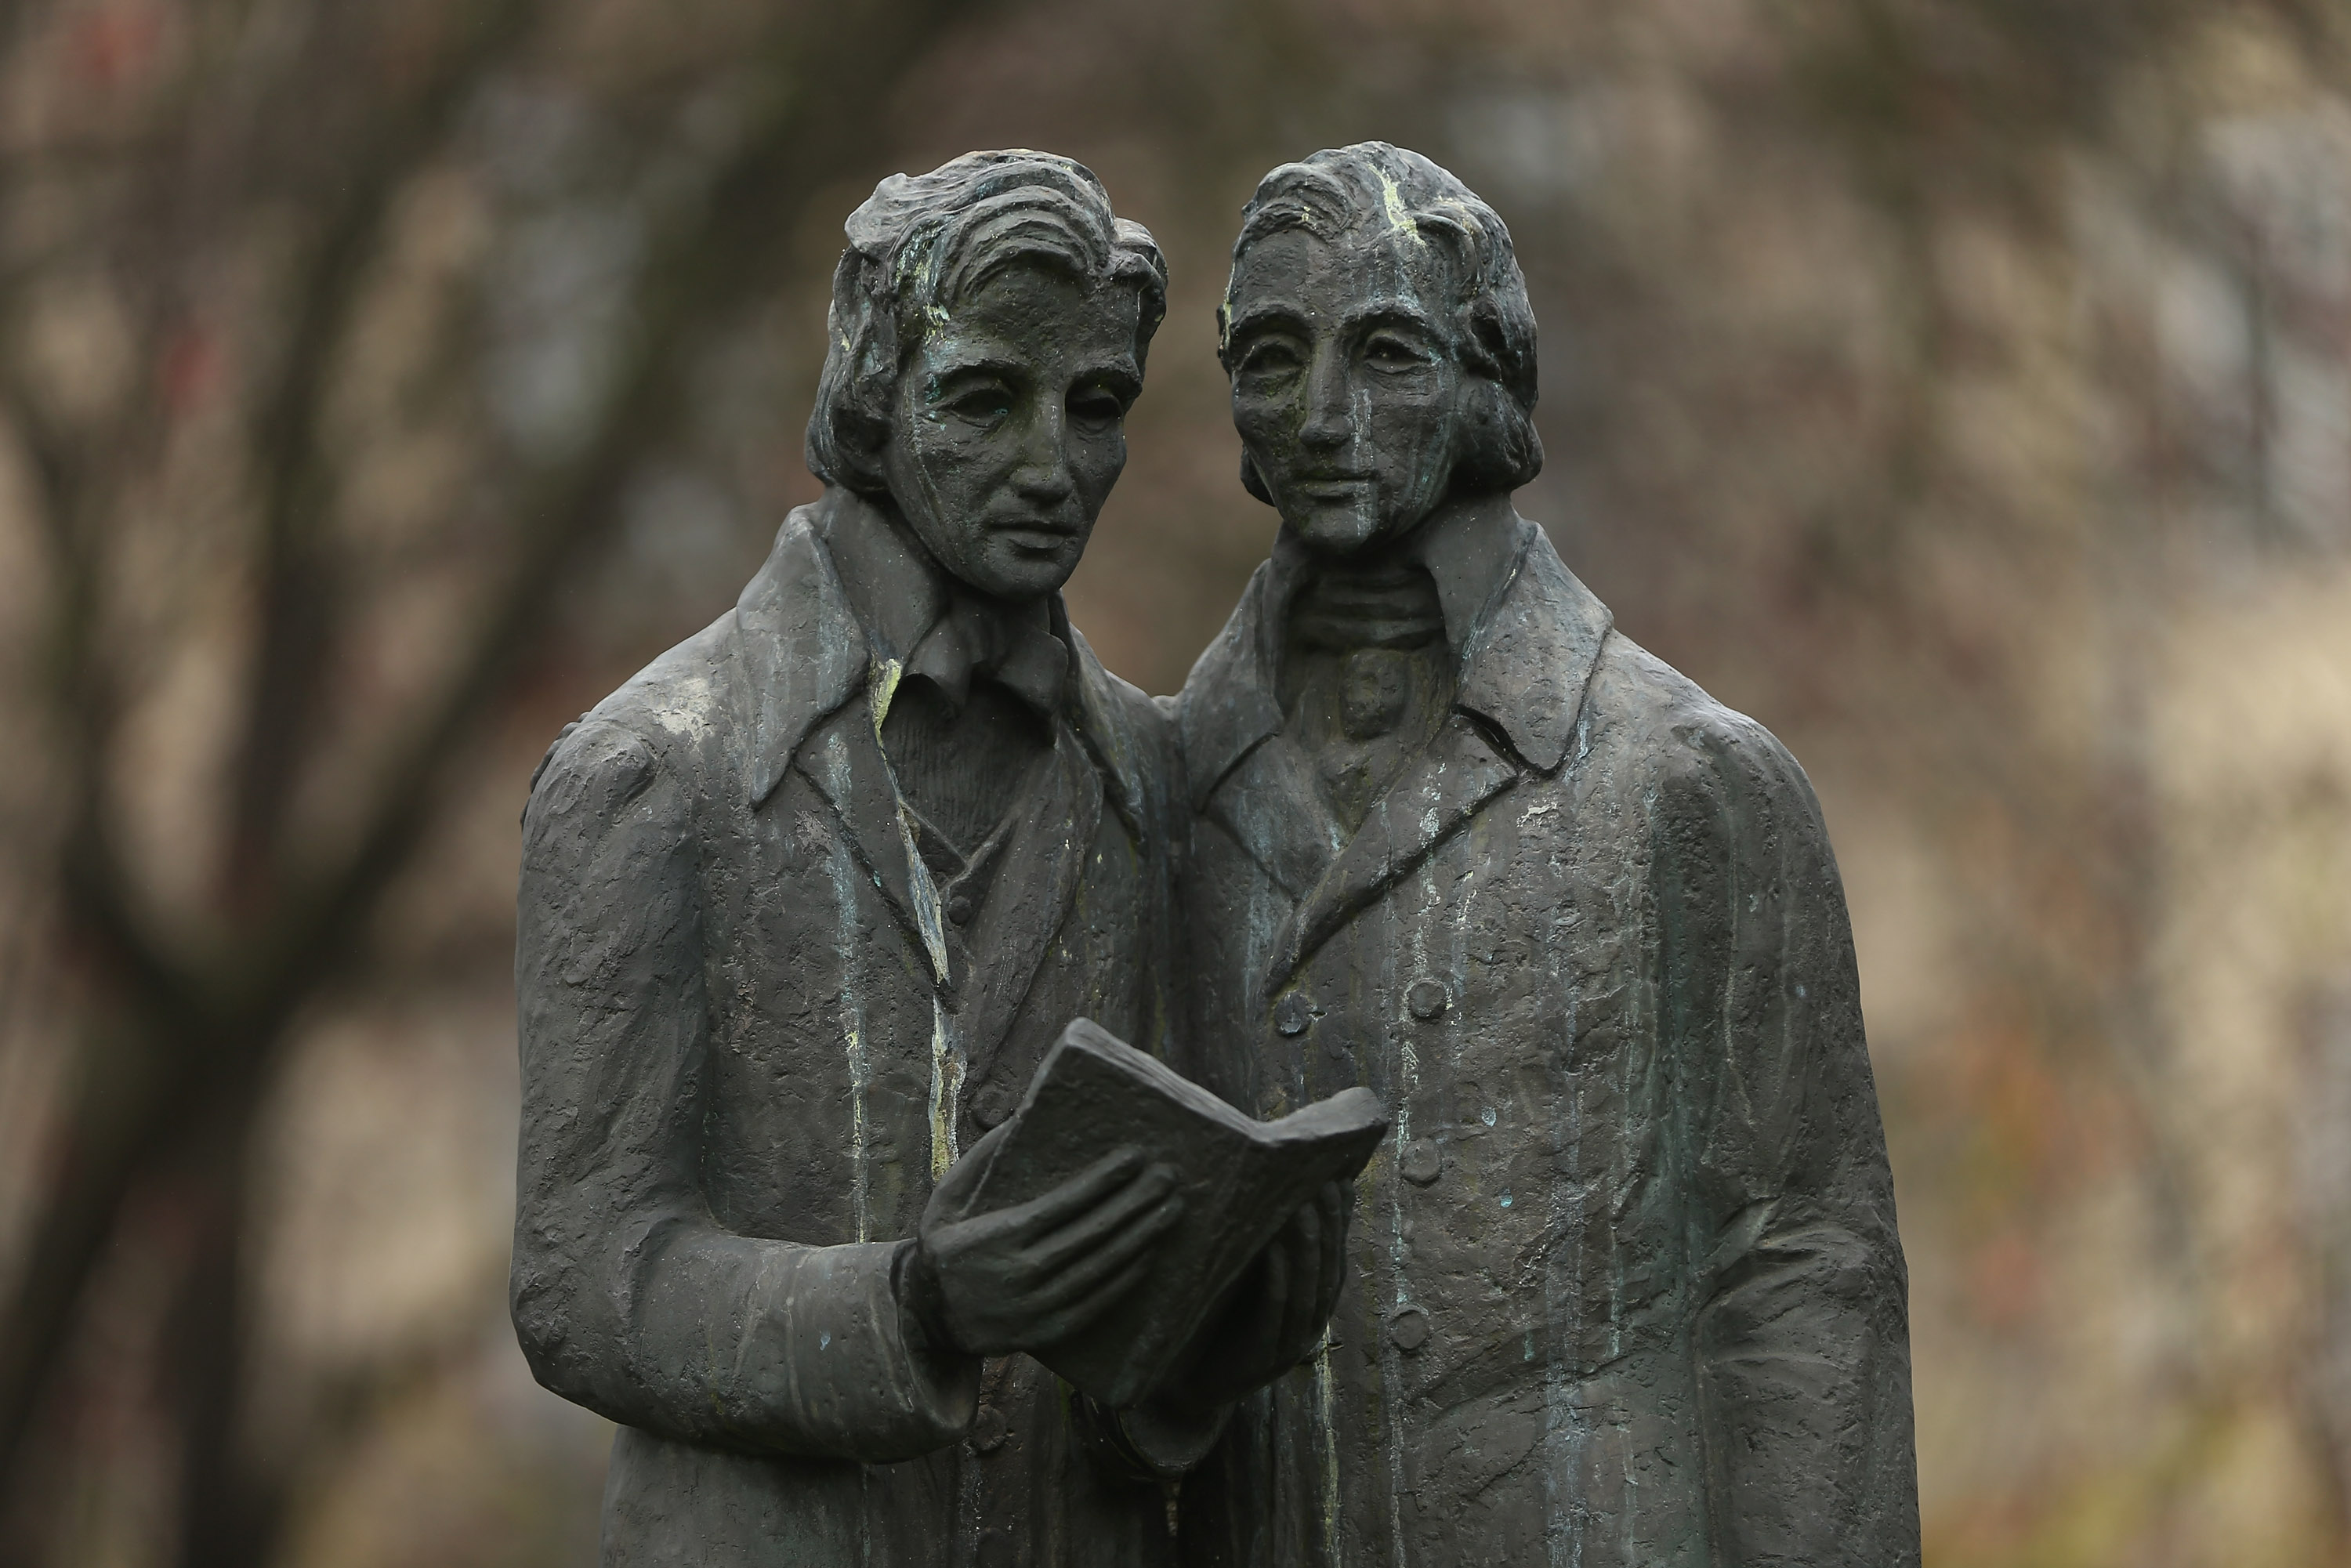 The Brothers Grimm... in real life